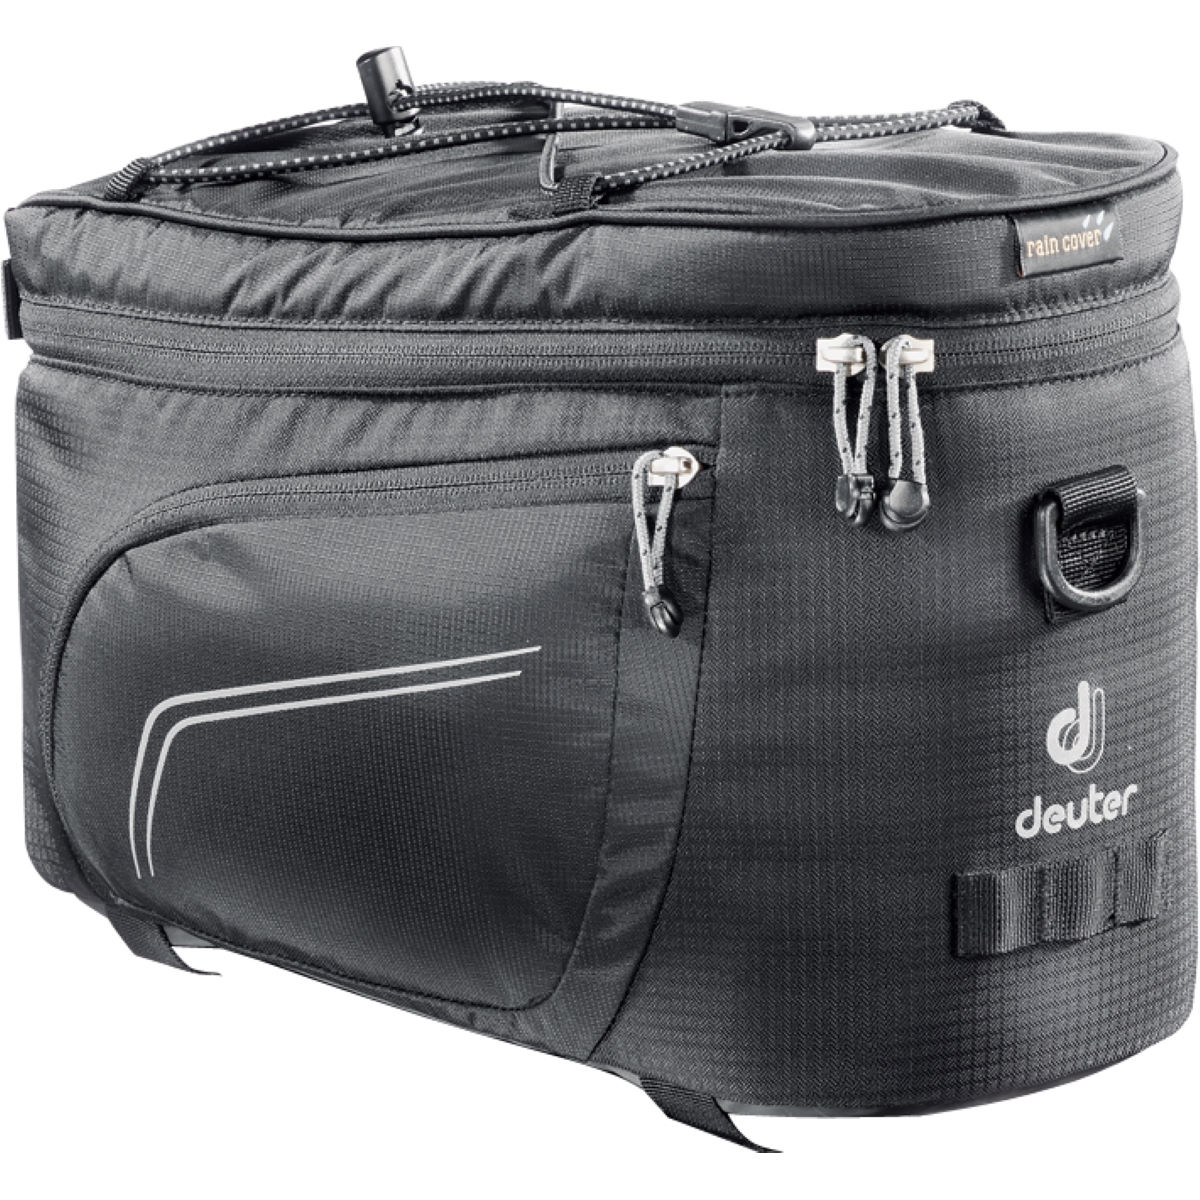 Deuter Rack Top Pack - 10 Litre